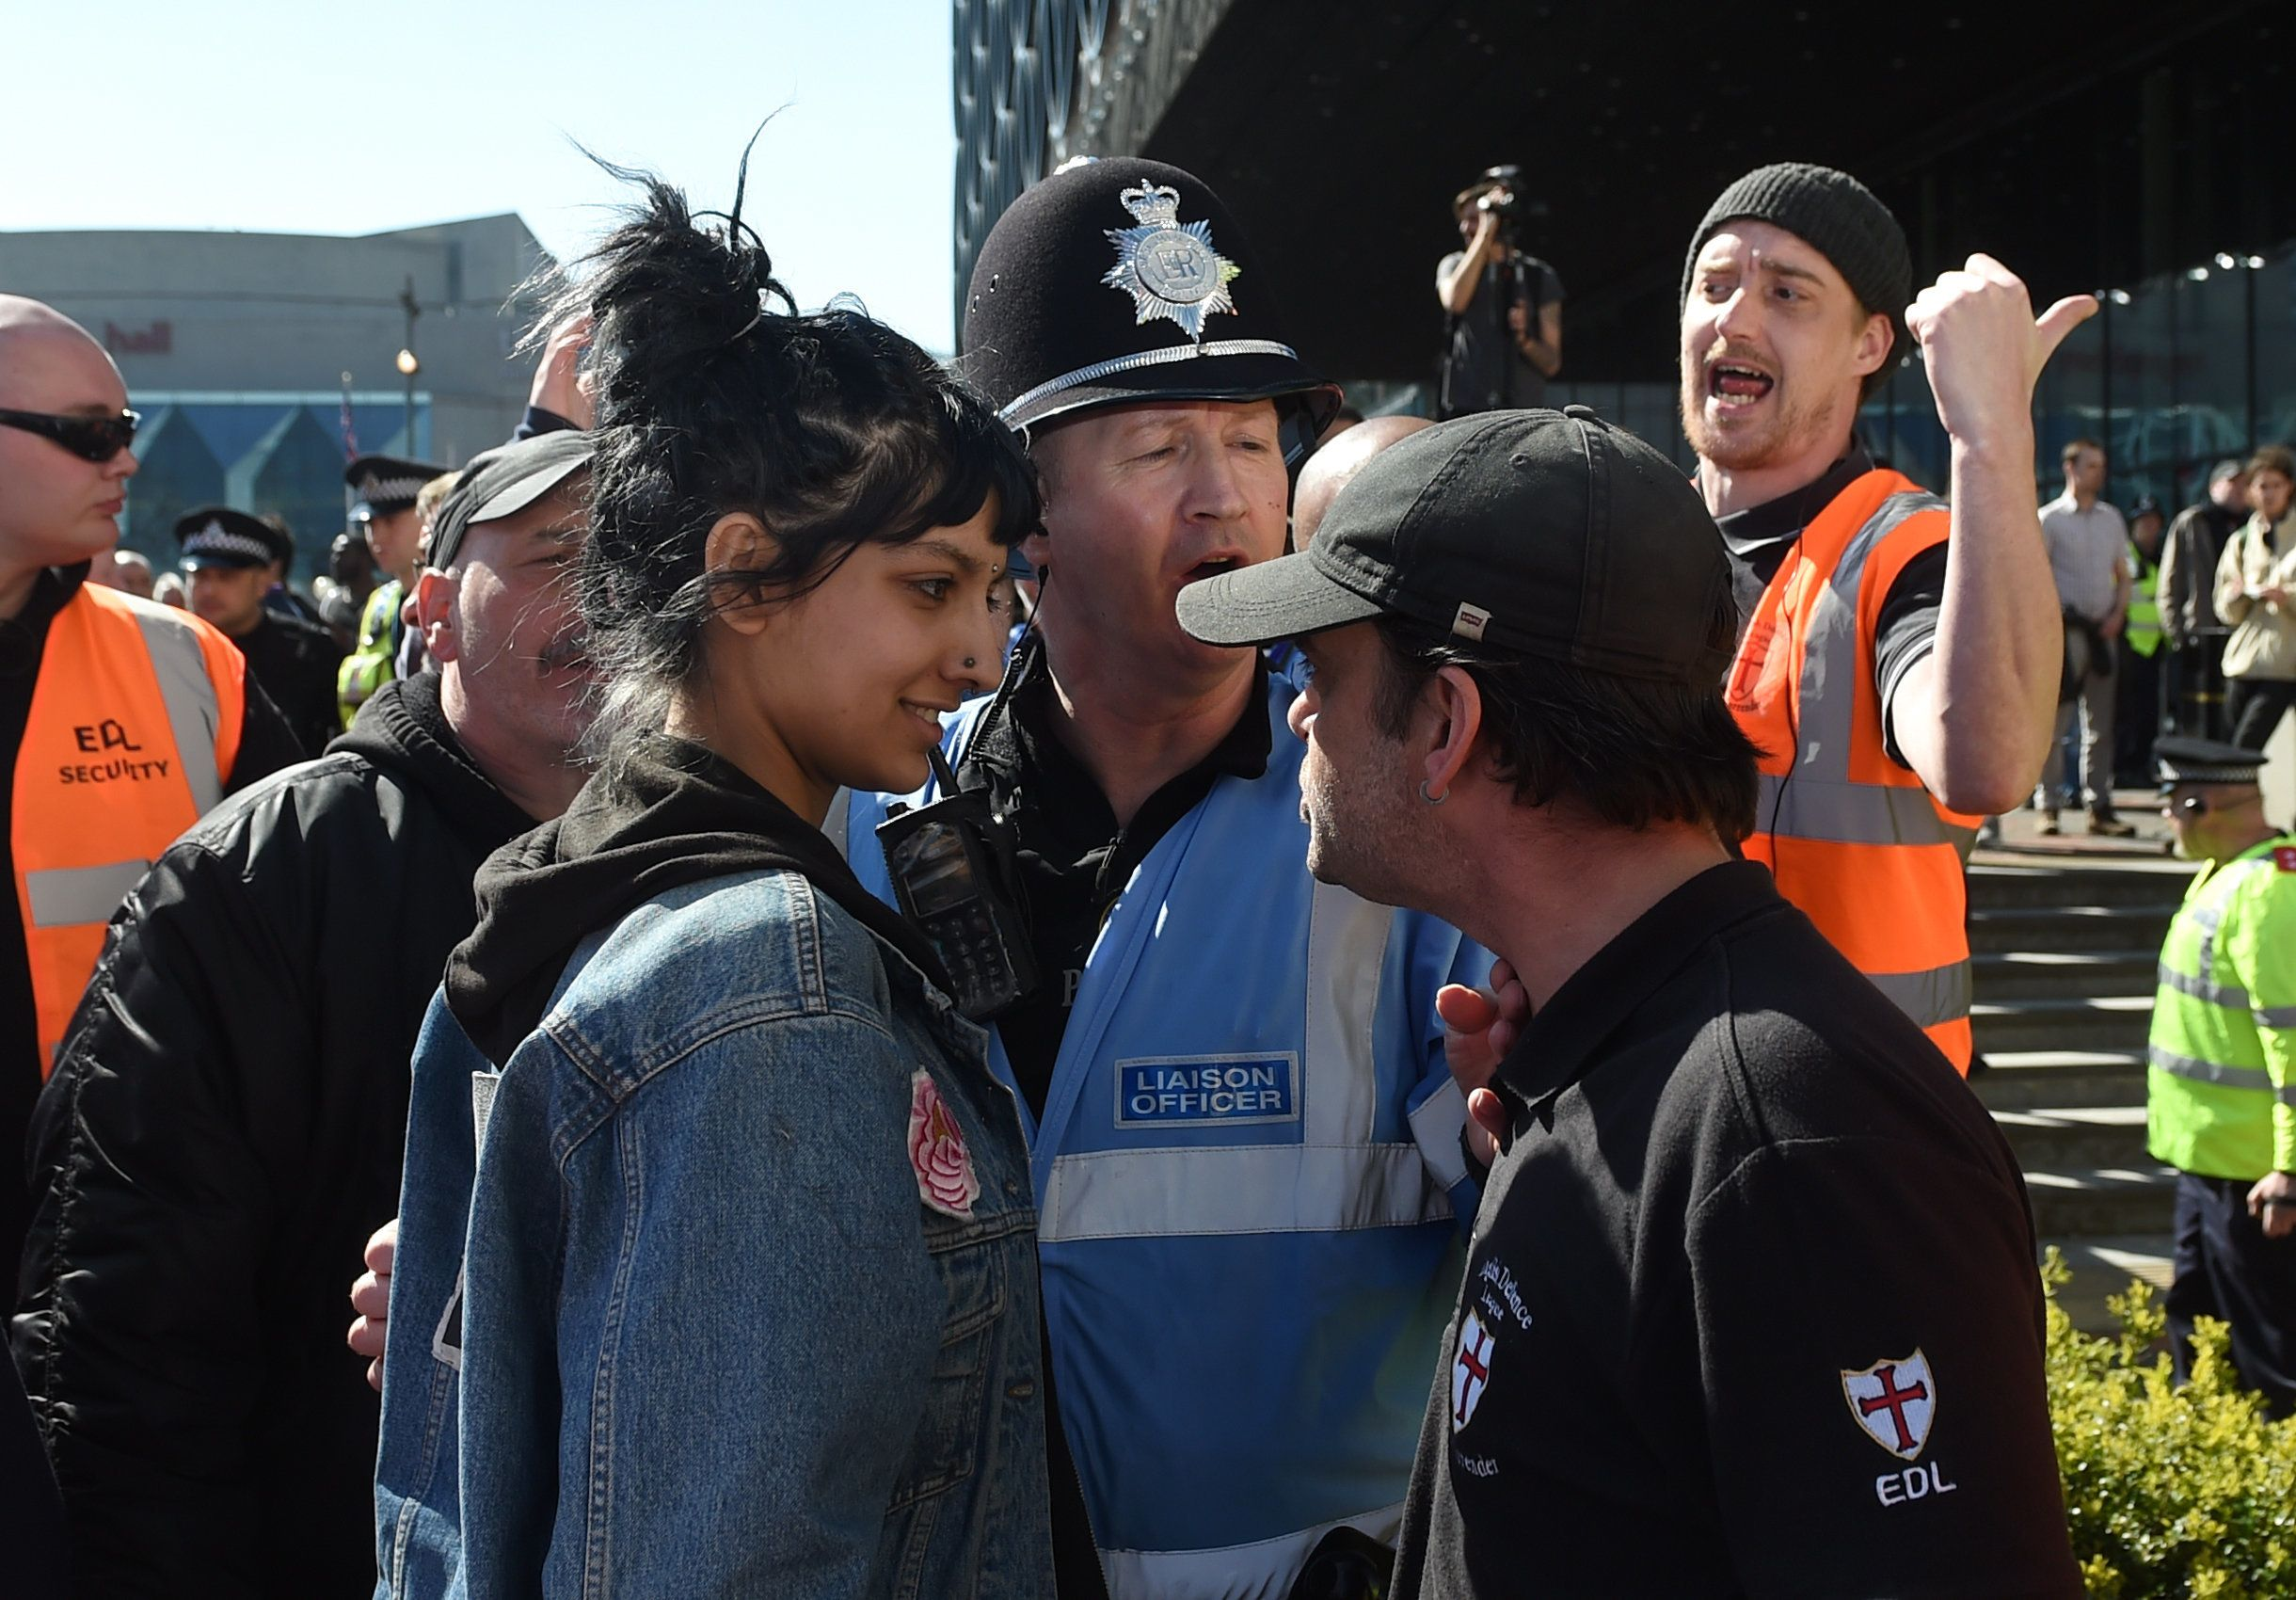 9 Pictures Of Birmingham Telling The EDL Where To